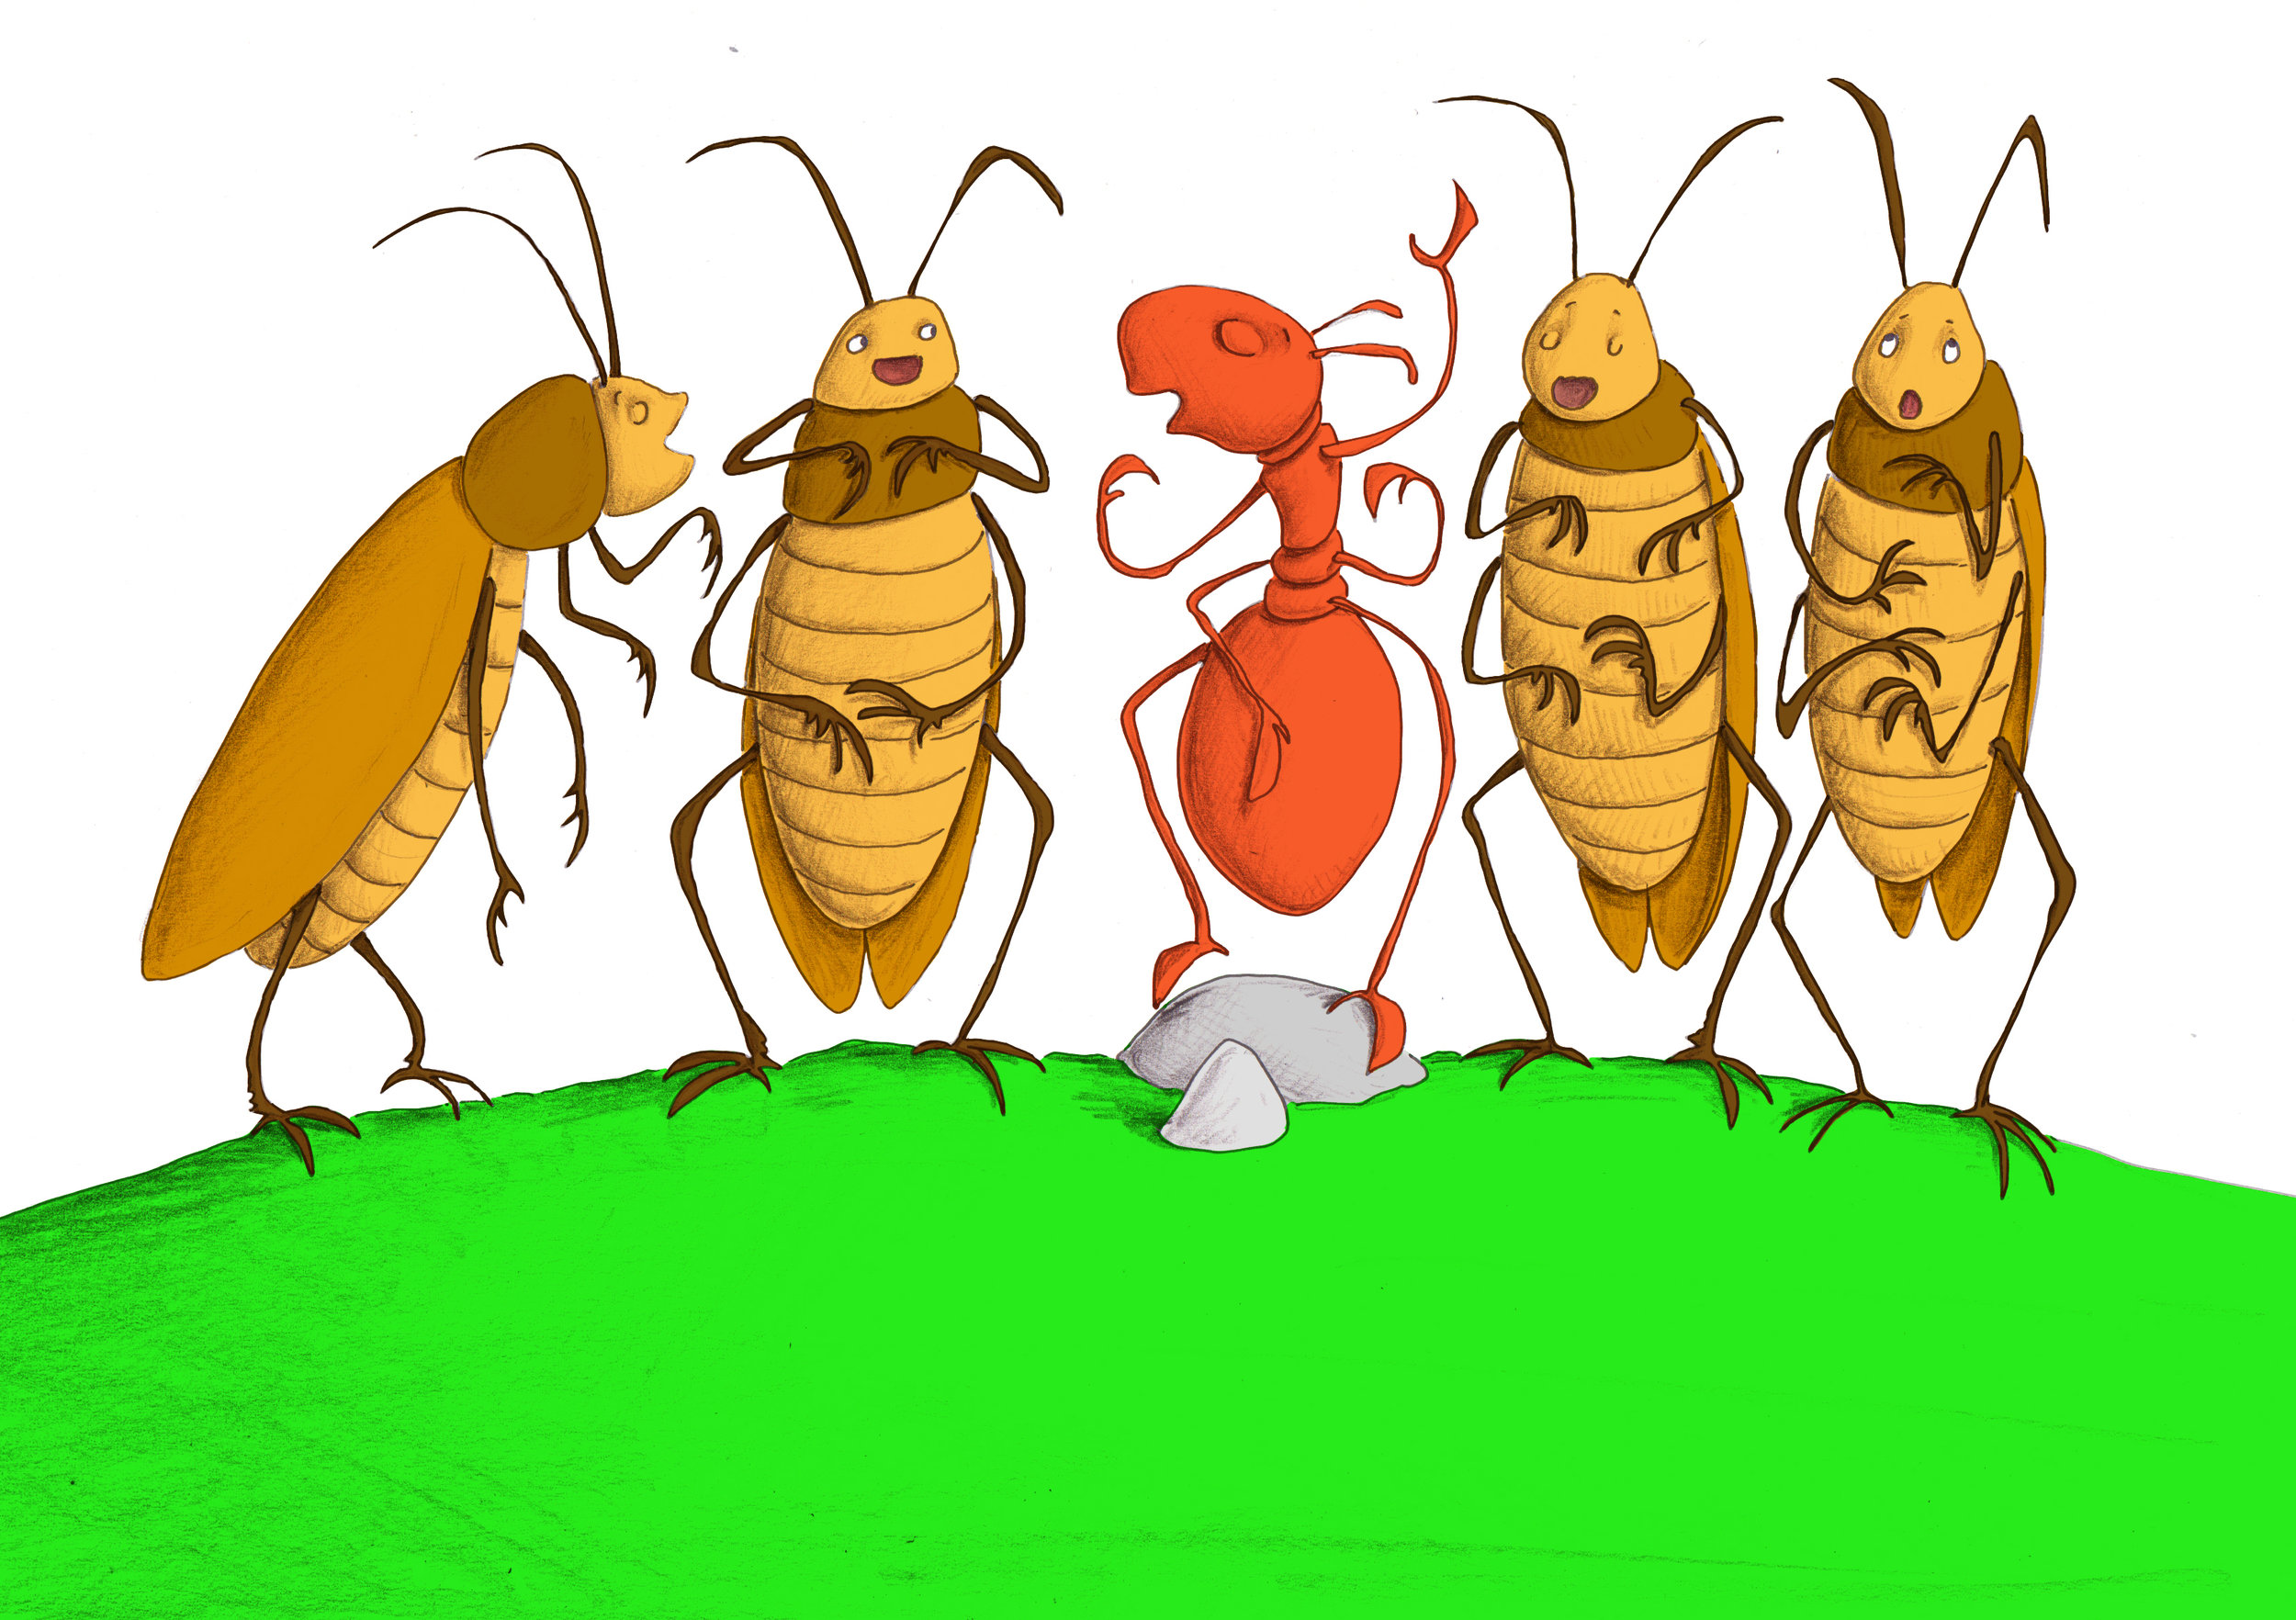 Download image from Little Ant and the Cricket.